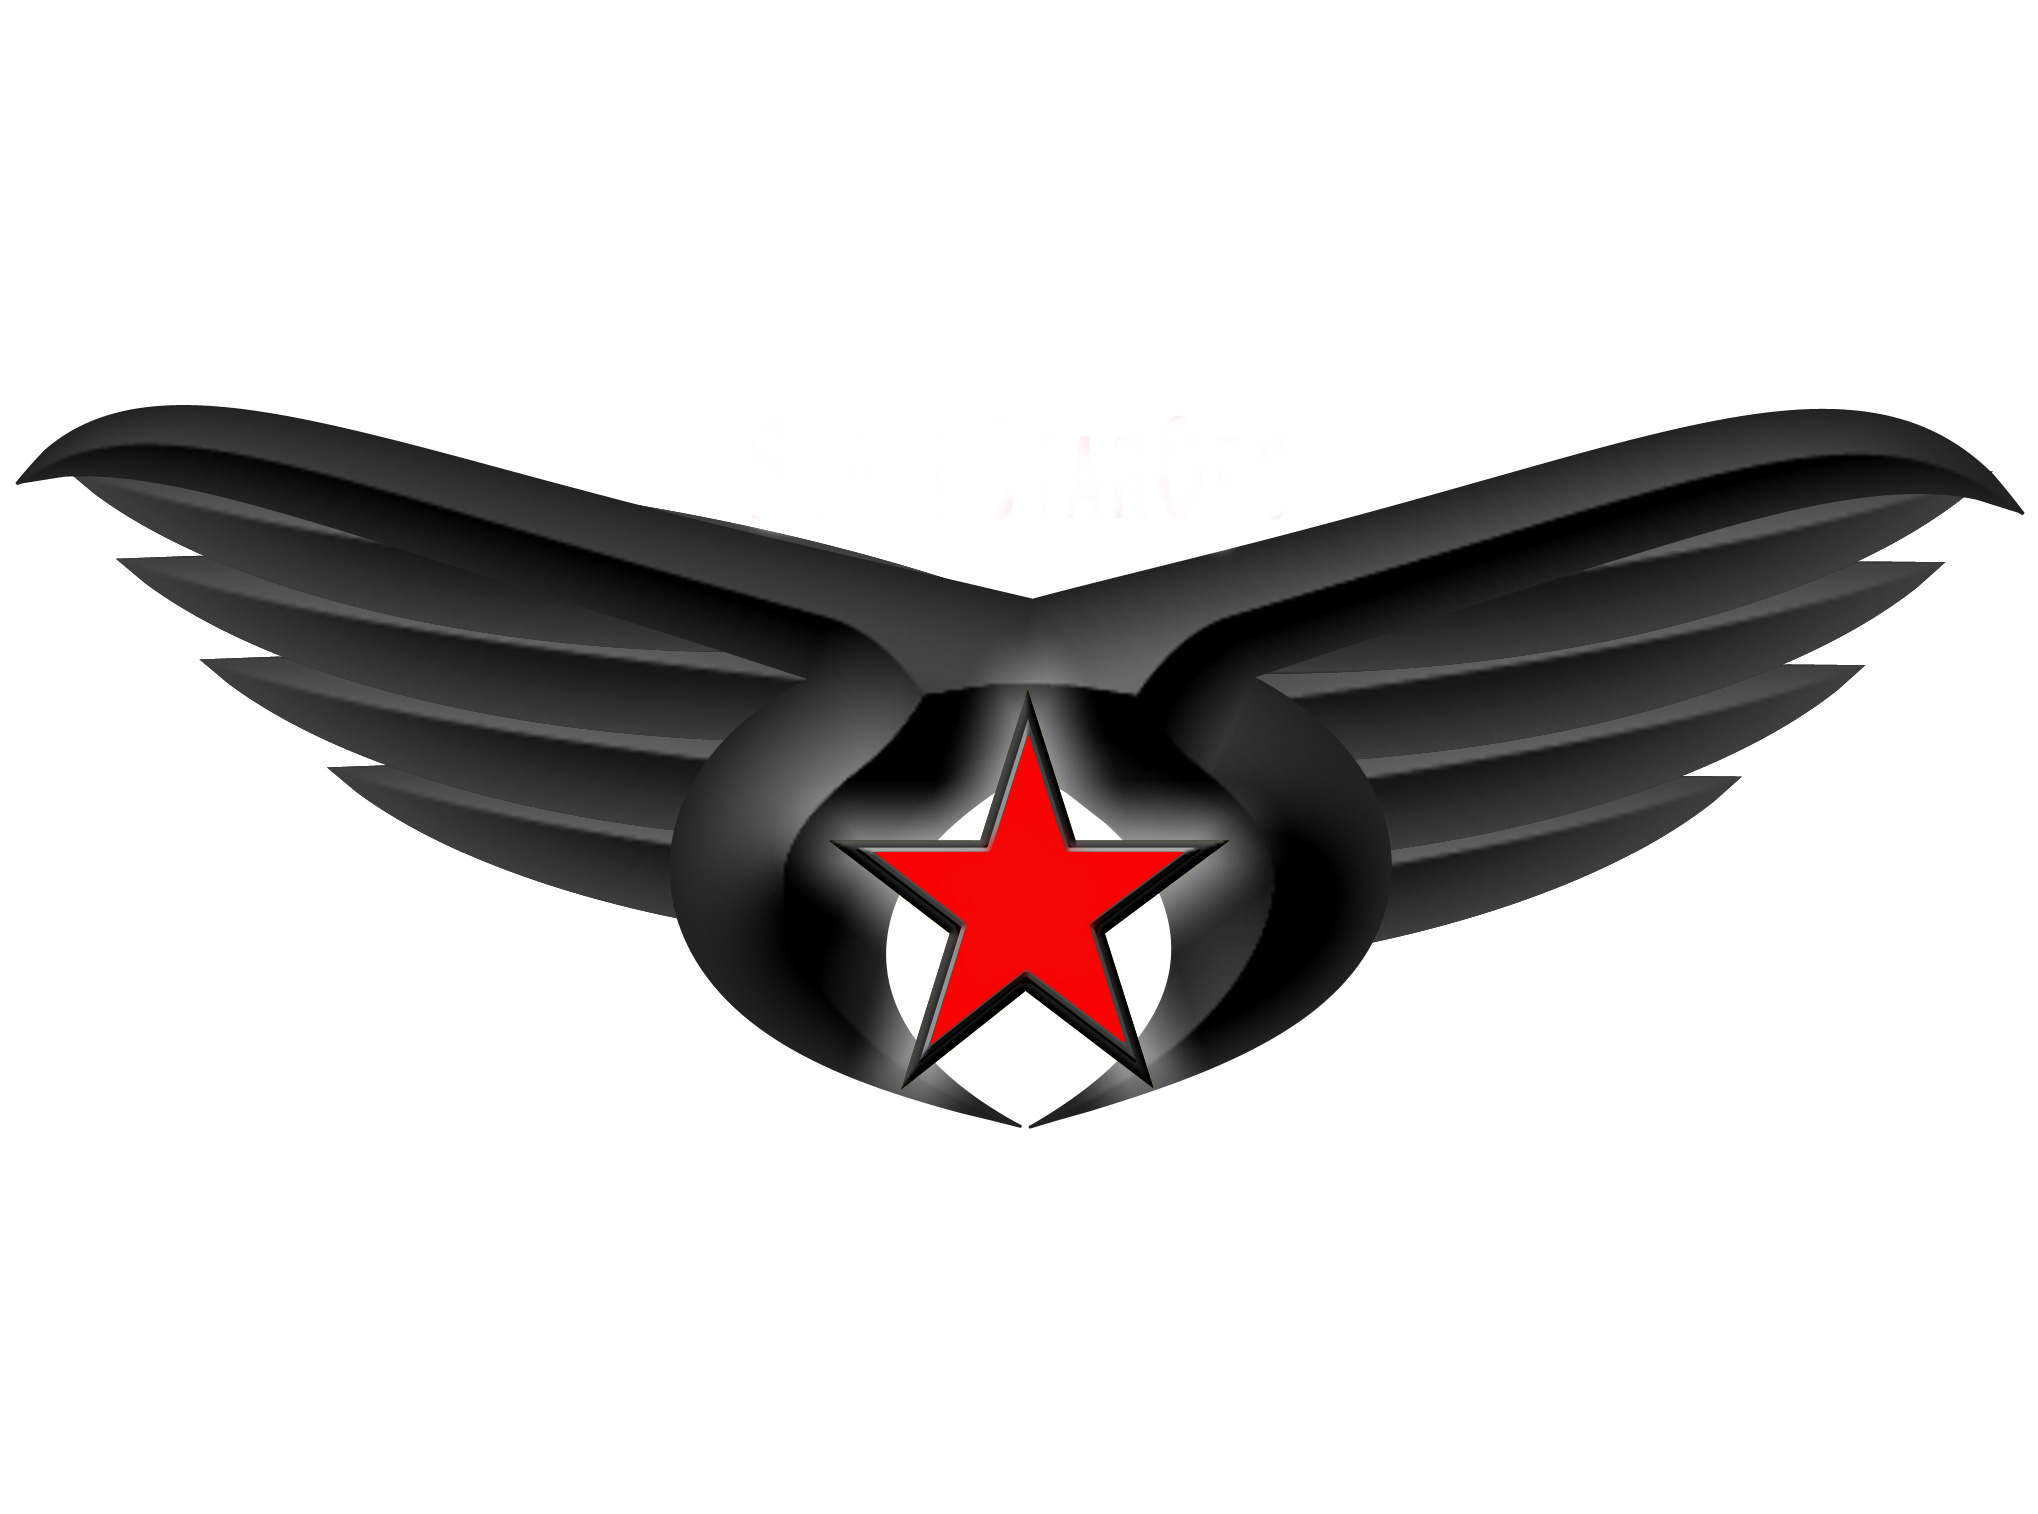 Black Star Ops - Black Star Ops is a product based company that created the first covert clothing company, made by our suppliers to our specifications. HTML 3, integrated separate digital shopping